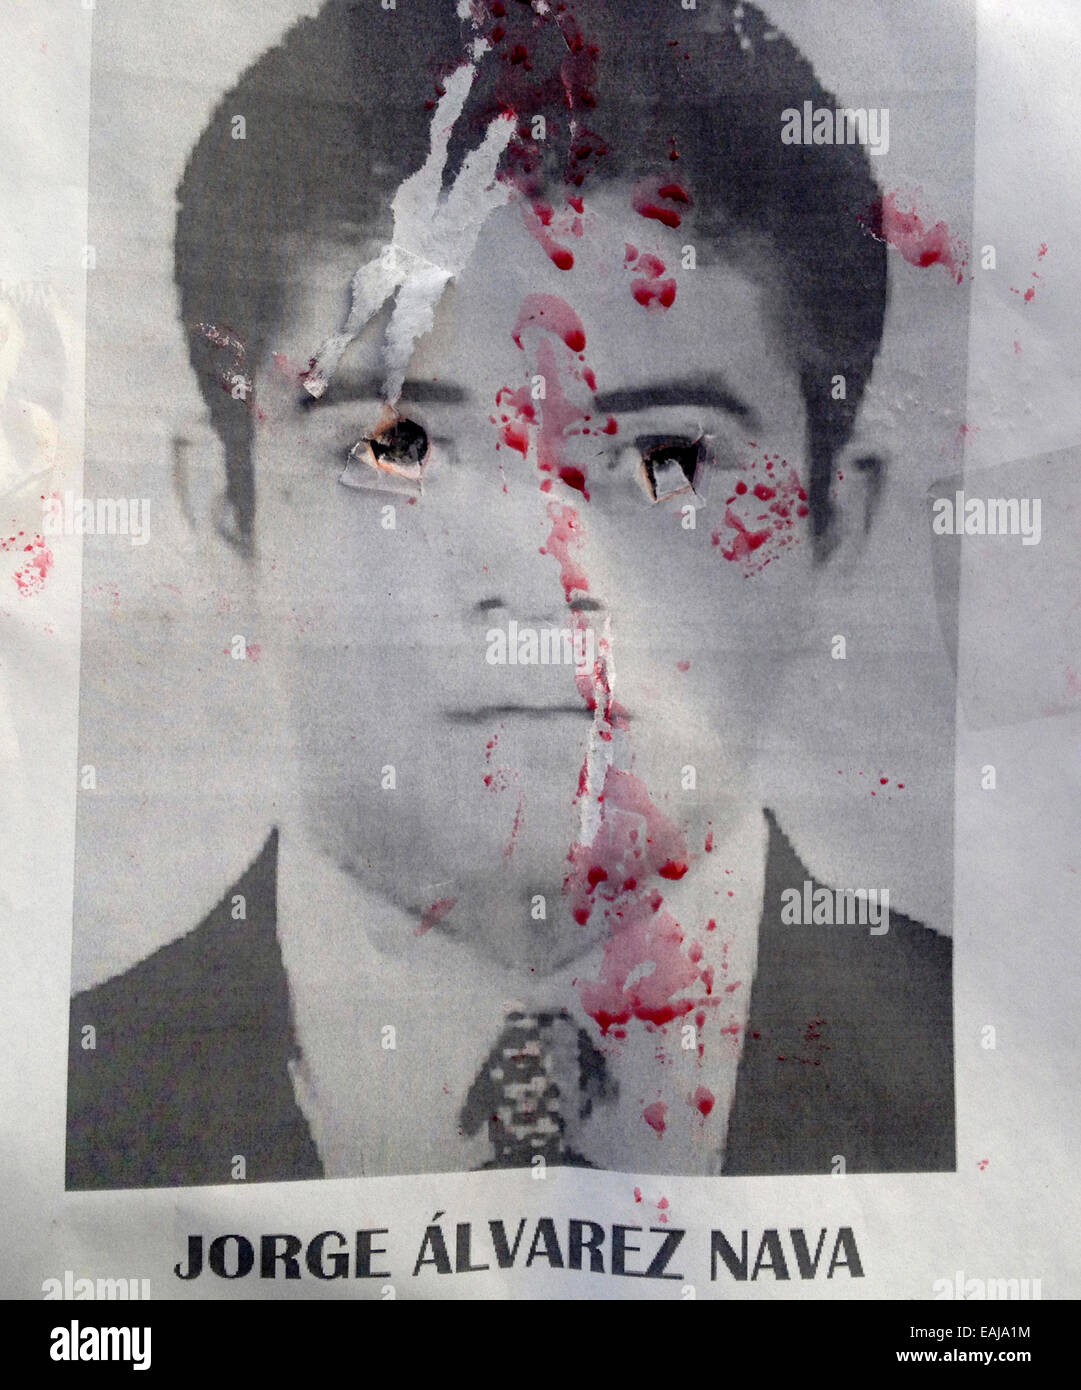 Guerrero State, Mexico. 15th Nov, 2014. A portrait of missing student Jorge Alvarez Nava painted with red paint Stock Photo